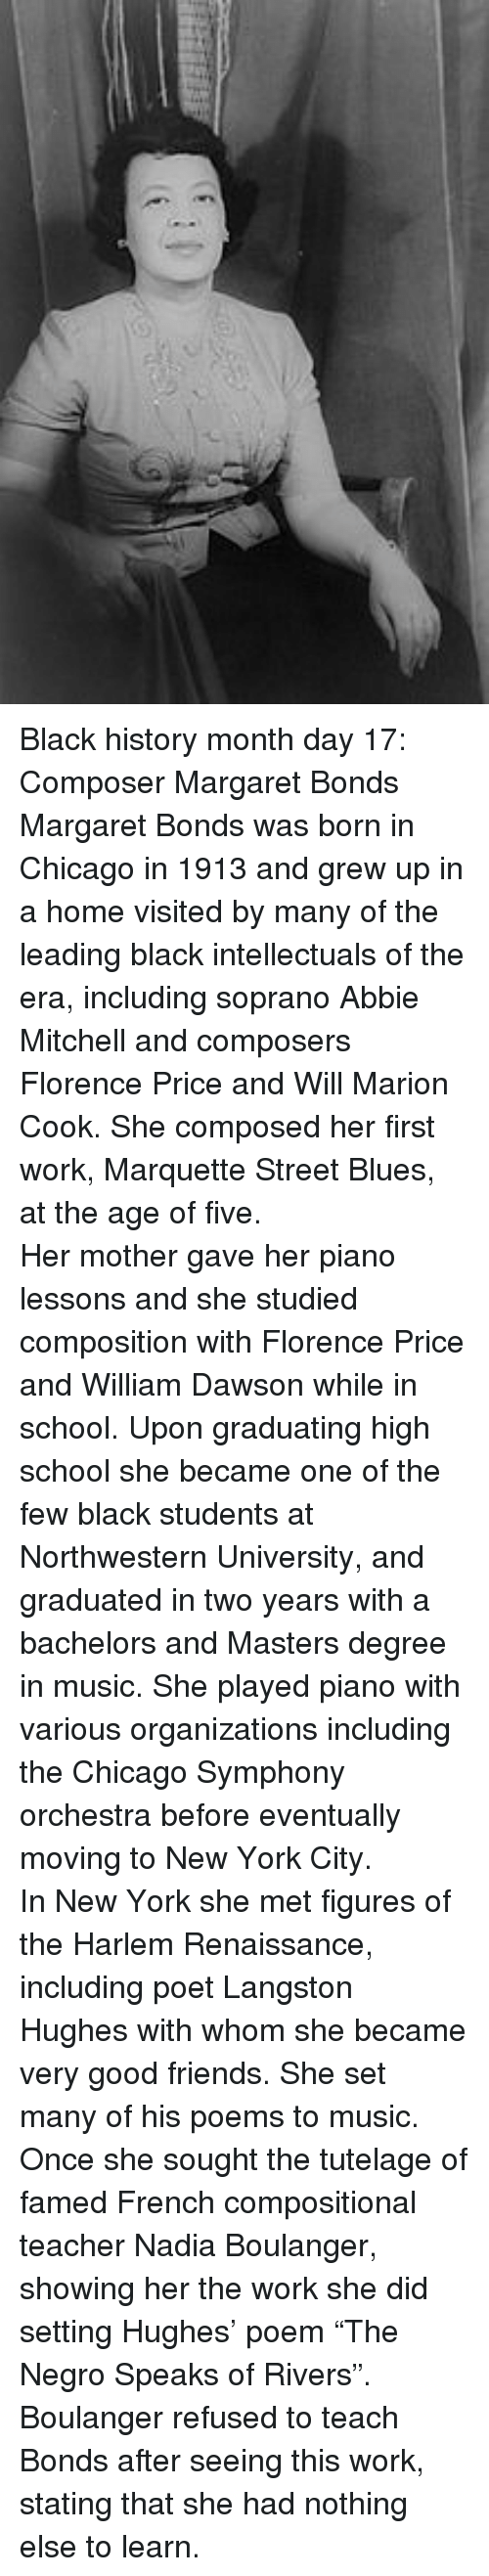 "Black History Month: <p>Black history month day 17: Composer Margaret Bonds</p>  <p>Margaret Bonds was born in Chicago in 1913 and grew up in a home visited by many of the leading black intellectuals of the era, including soprano Abbie Mitchell and composers Florence Price and Will Marion Cook. She composed her first work, Marquette Street Blues, at the age of five.</p>  <p>Her mother gave her piano lessons and she studied composition with Florence Price and William Dawson while in school. Upon graduating high school she became one of the few black students at Northwestern University, and graduated in two years with a bachelors and Masters degree in music. She played piano with various organizations including the Chicago Symphony orchestra before eventually moving to New York City.</p>  <p>In New York she met figures of the Harlem Renaissance, including poet Langston Hughes with whom she became very good friends. She set many of his poems to music. Once she sought the tutelage of famed French compositional teacher Nadia Boulanger, showing her the work she did setting Hughes' poem ""The Negro Speaks of Rivers"". Boulanger refused to teach Bonds after seeing this work, stating that she had nothing else to learn.</p>"